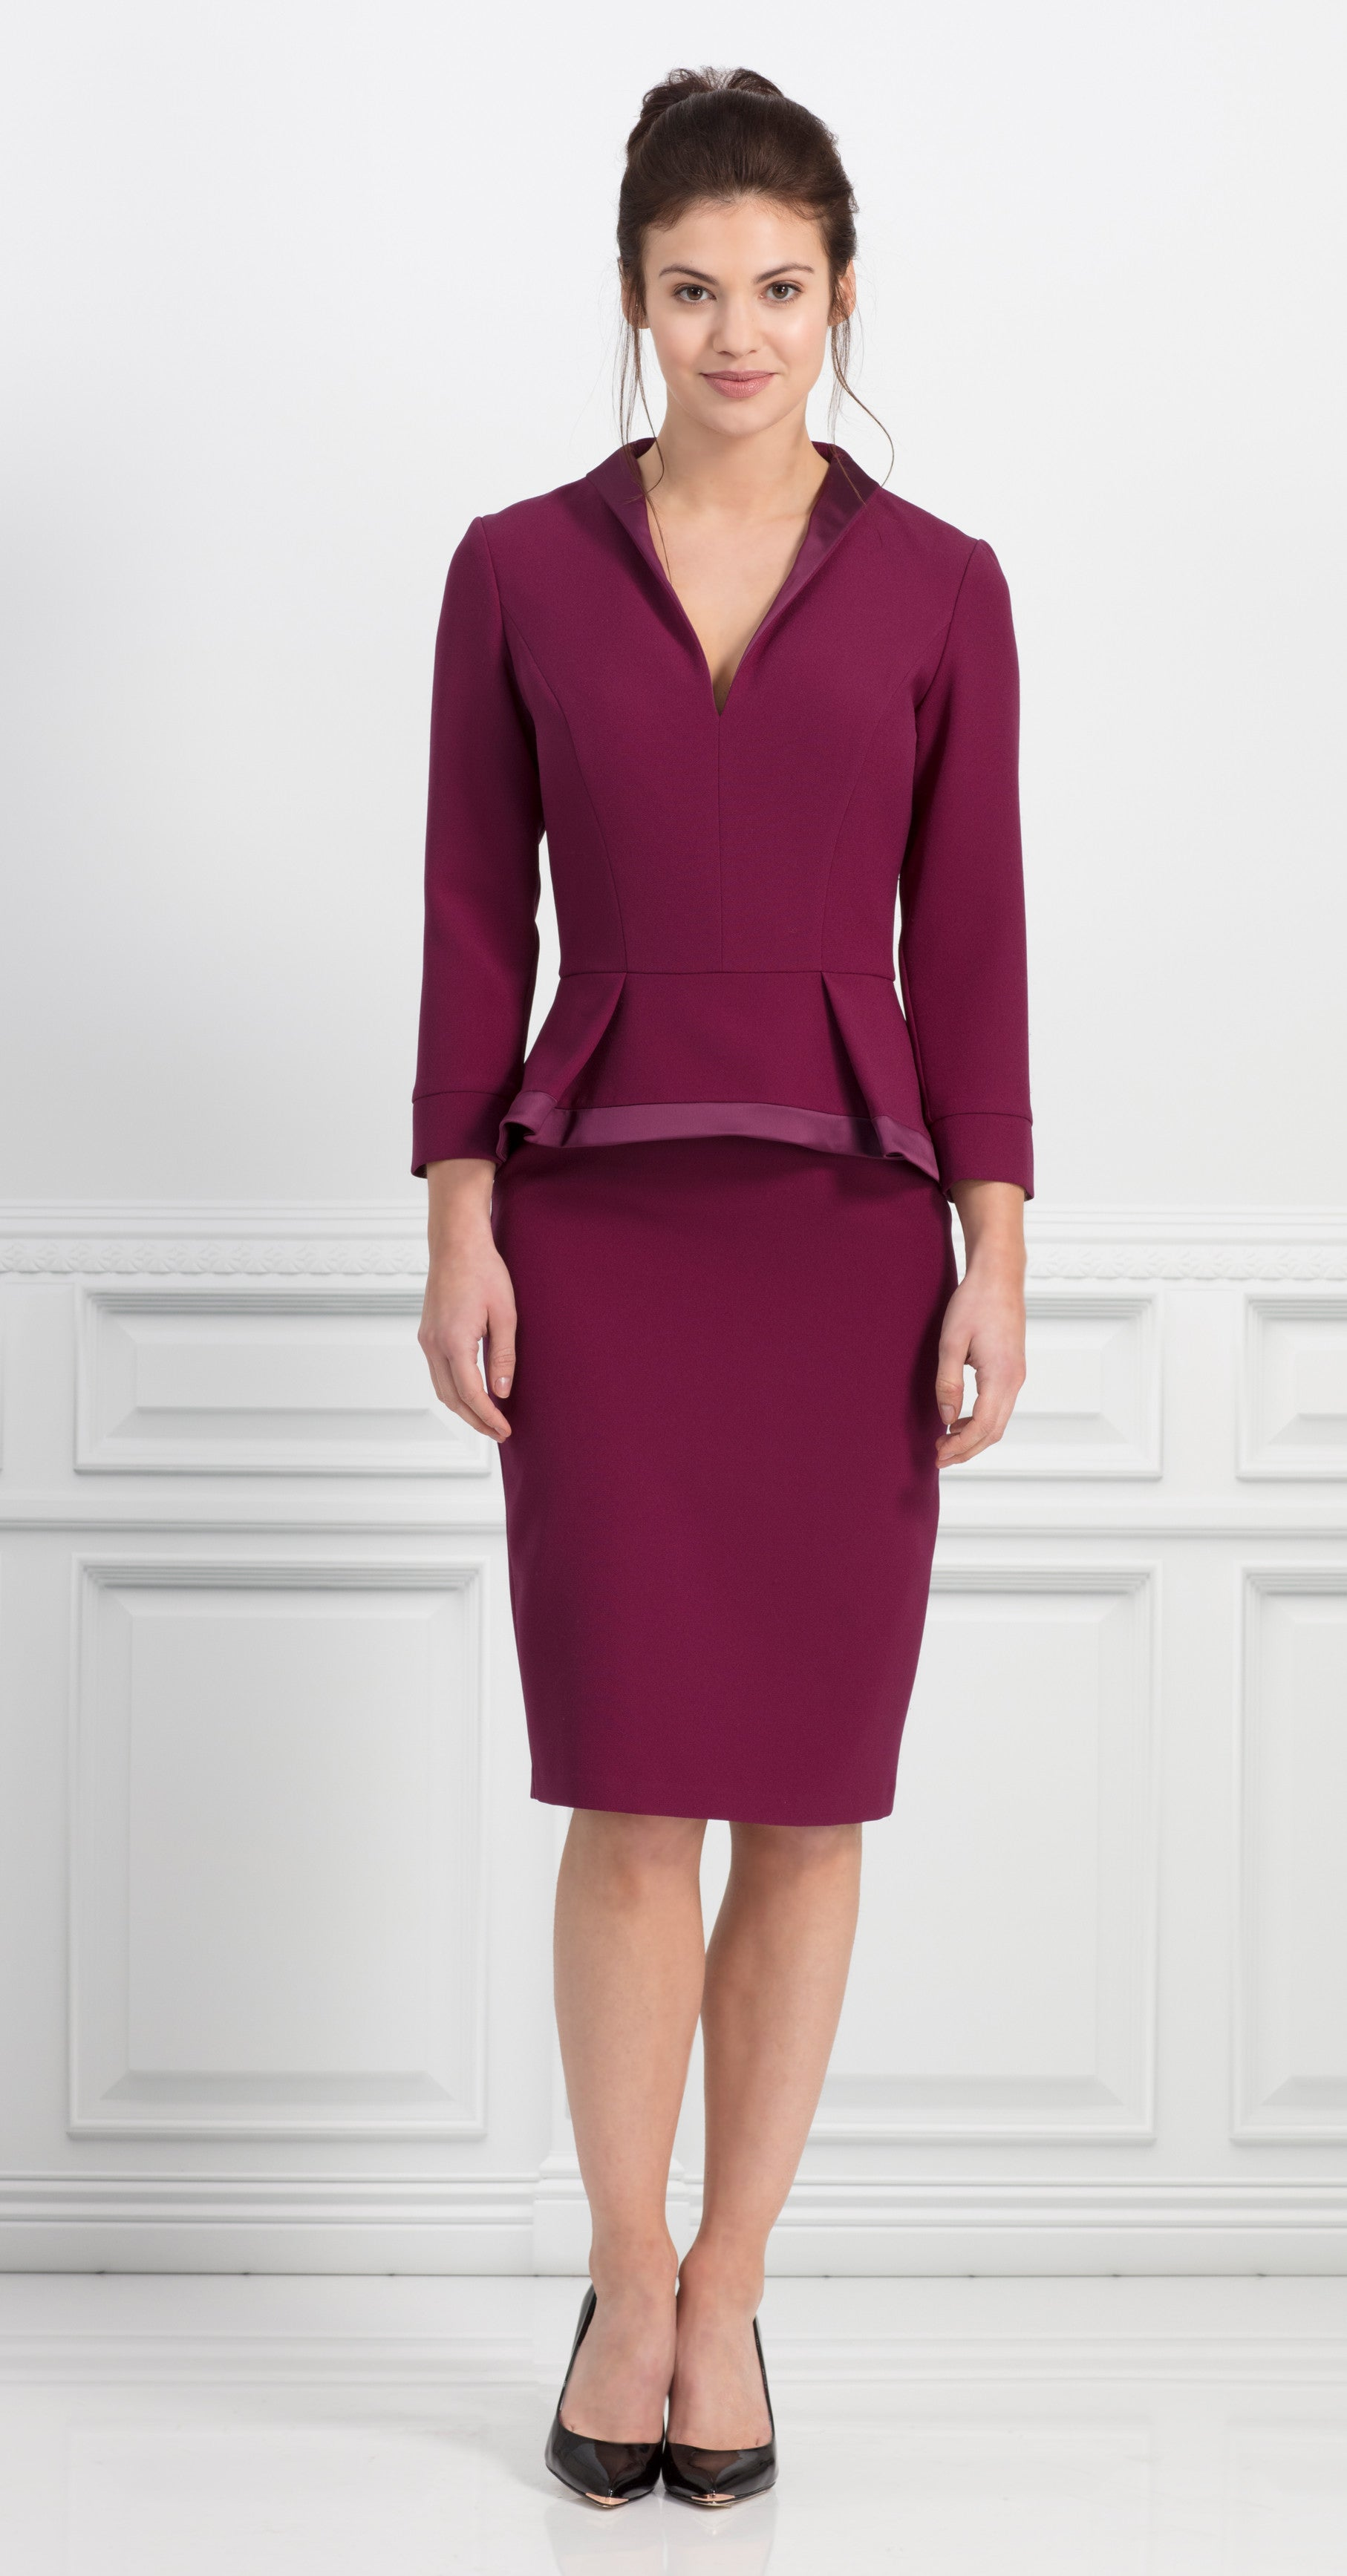 COLUMBIA DRESS PLUM